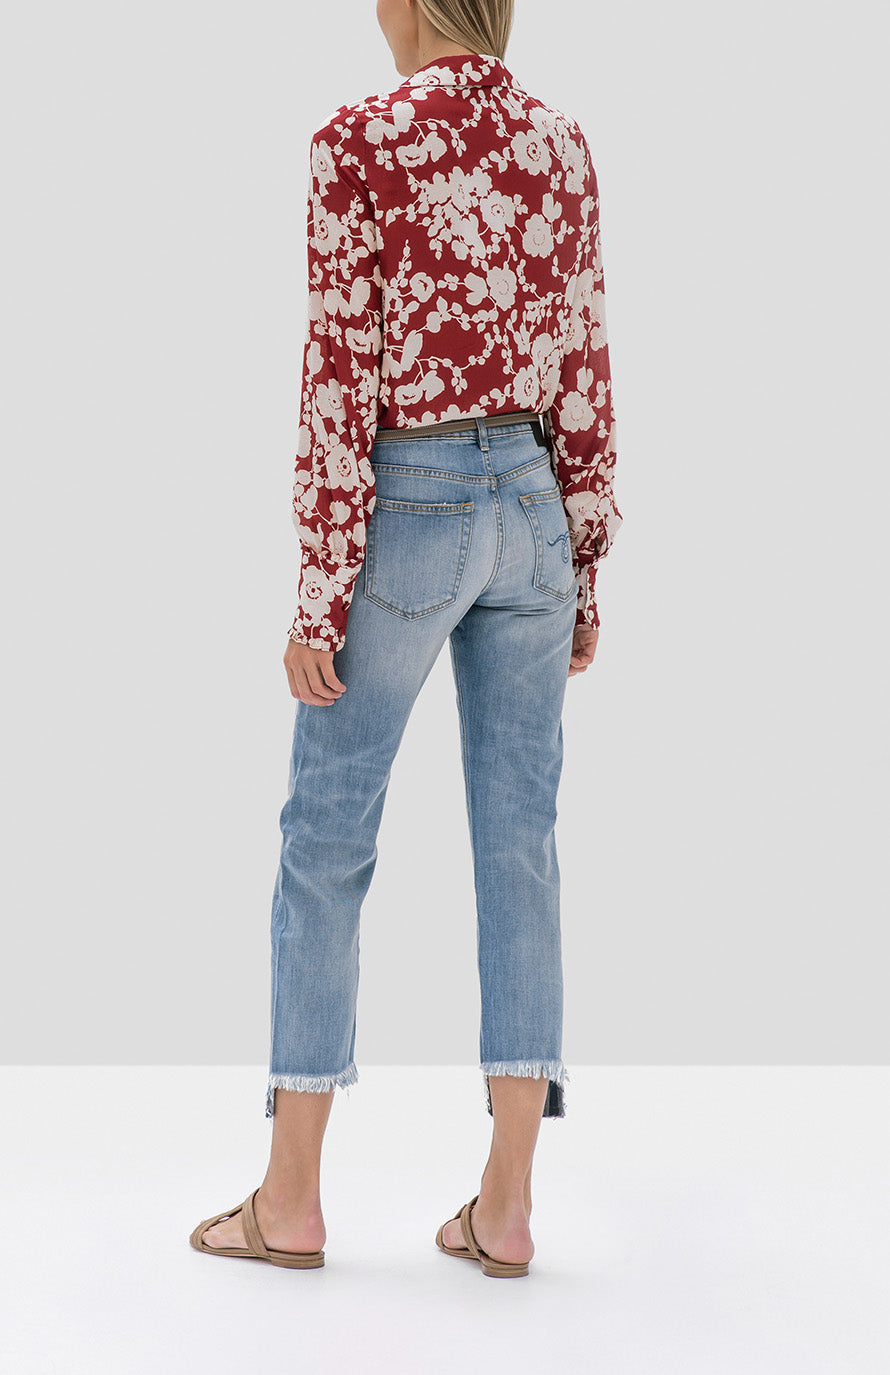 Alexis Daina Top in Maroon Poppy from the Fall Winter 2019 Ready To Wear Collection - Rear View